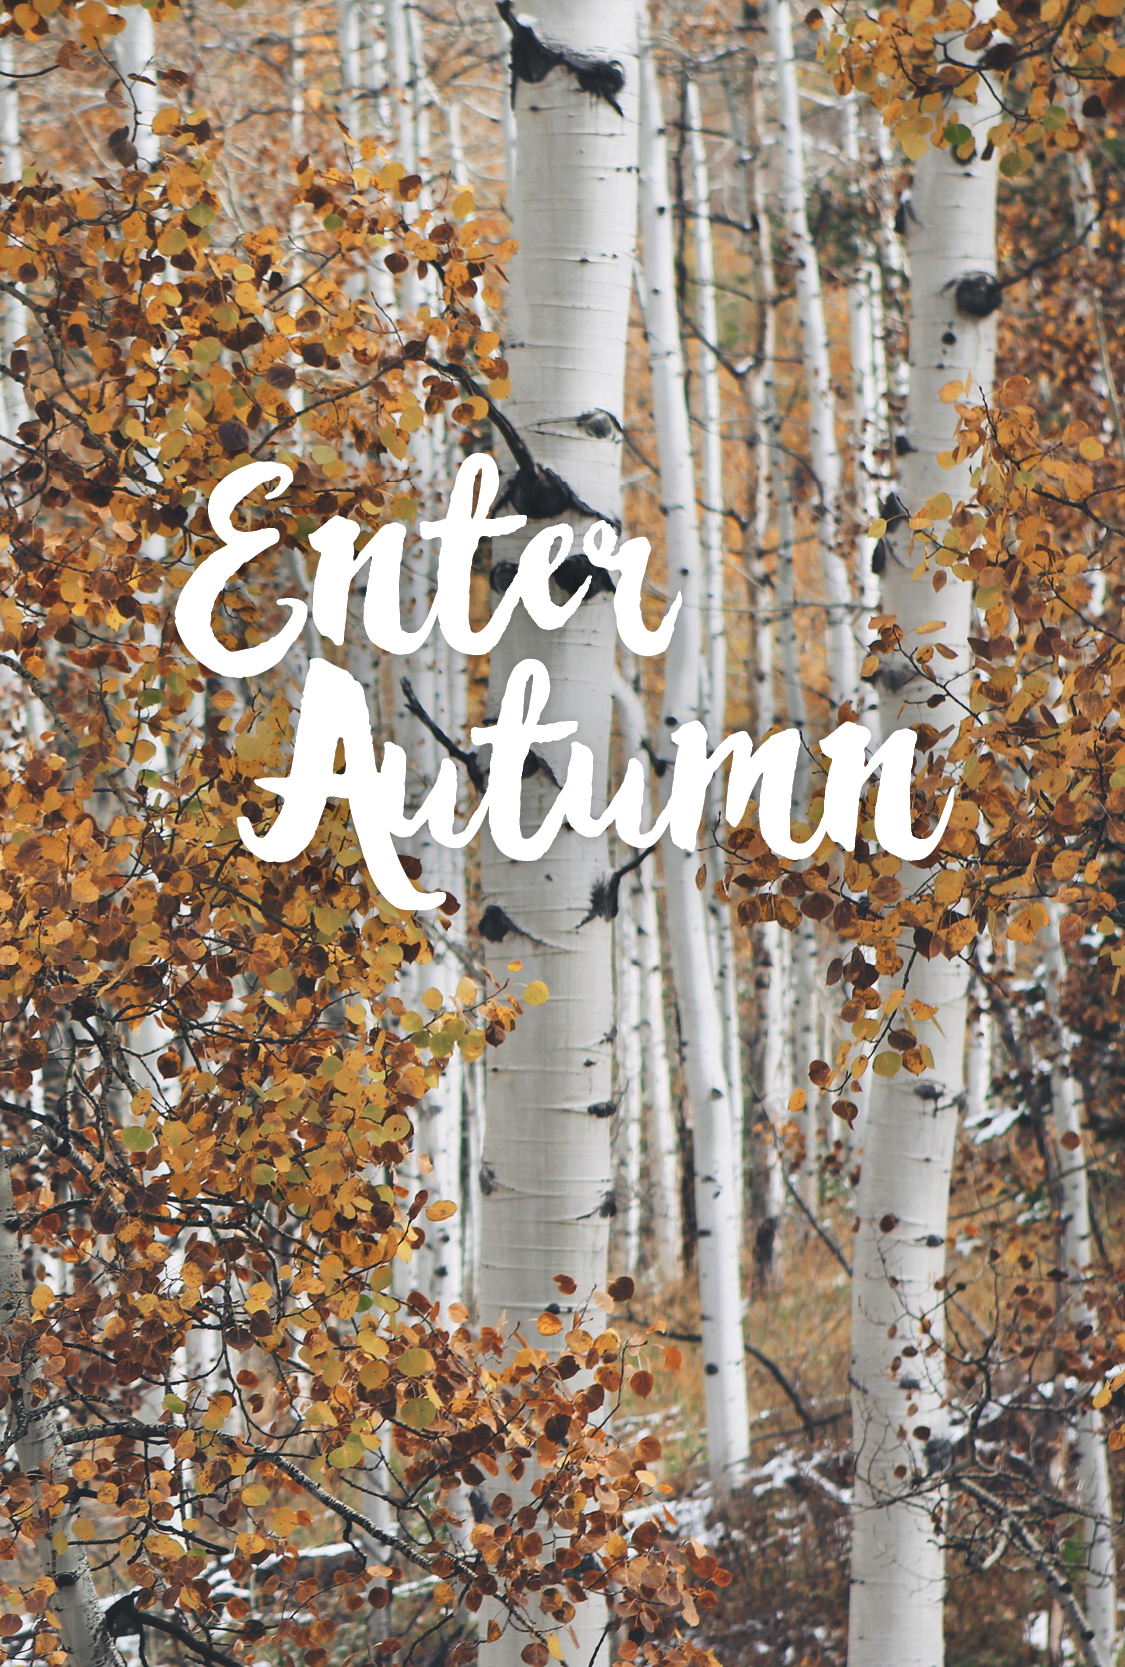 Enter Autumn